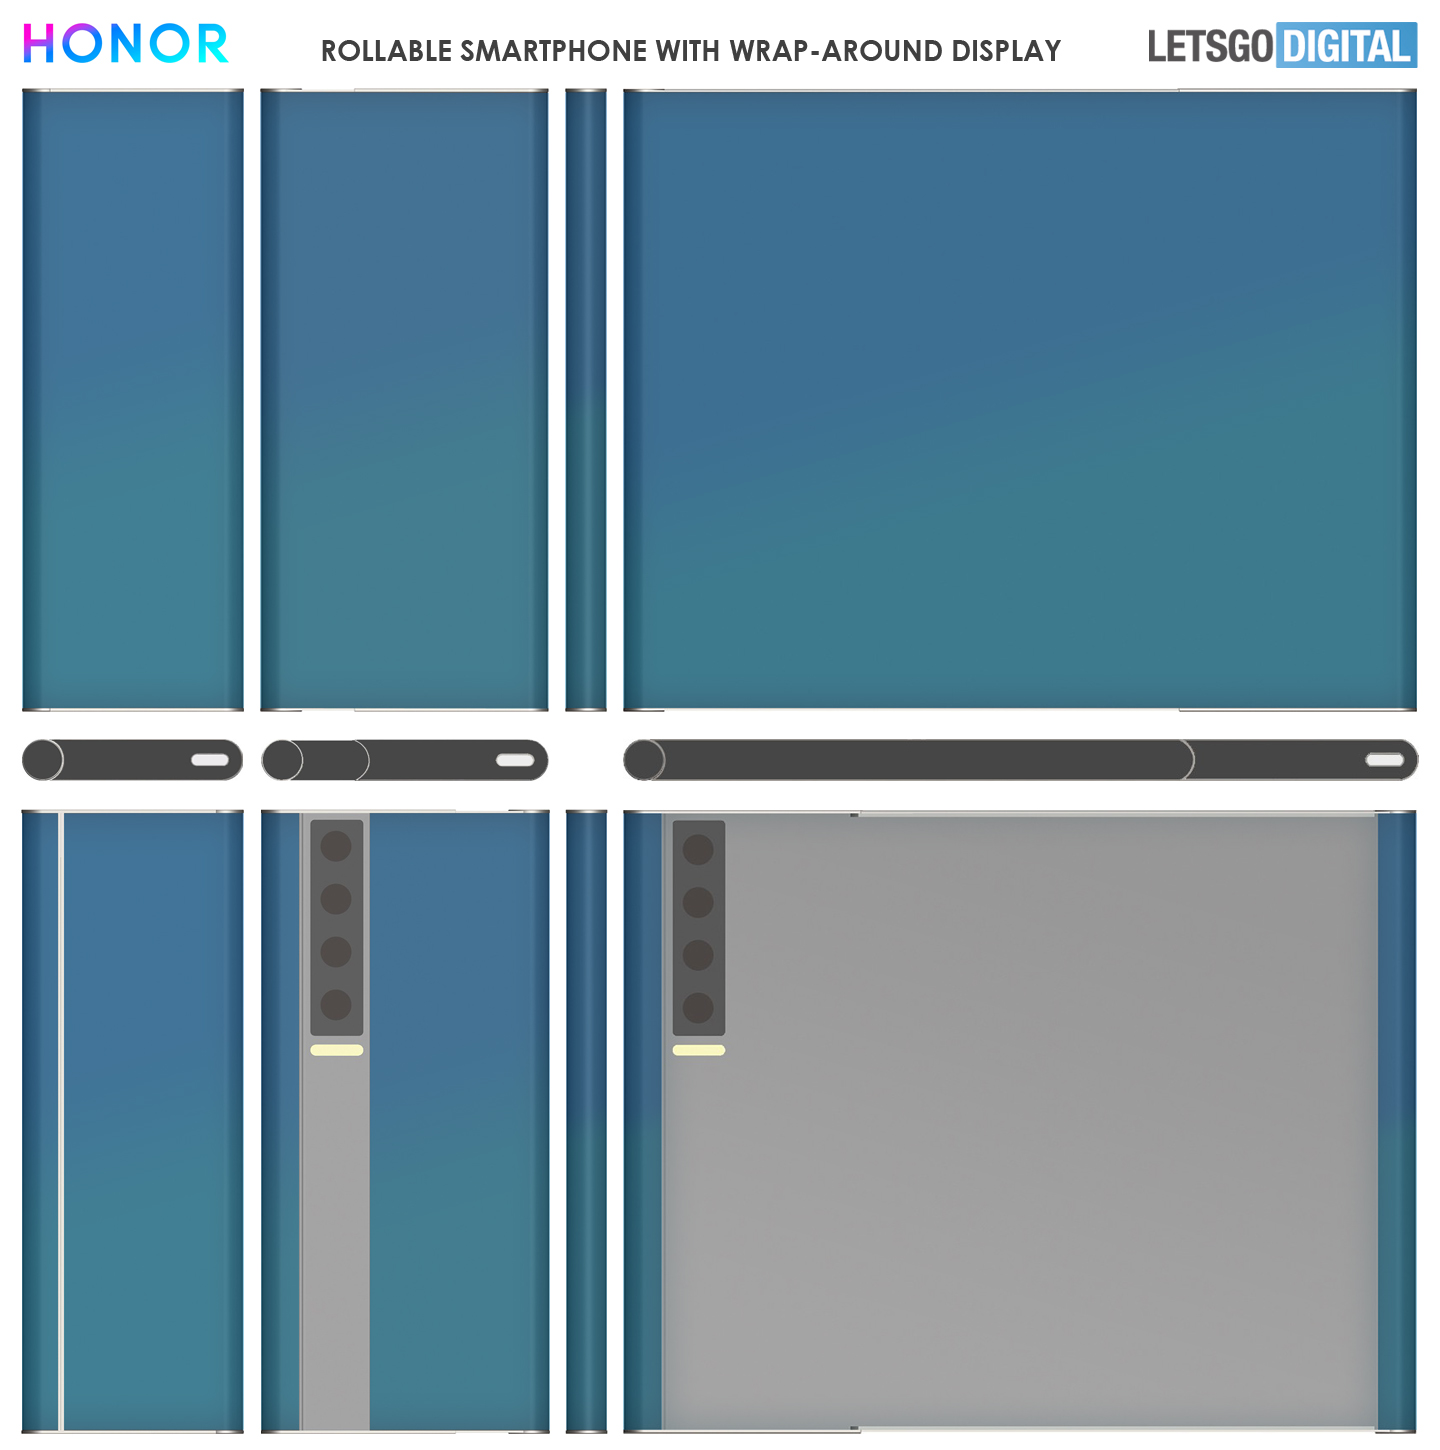 Honor rollable smartphone